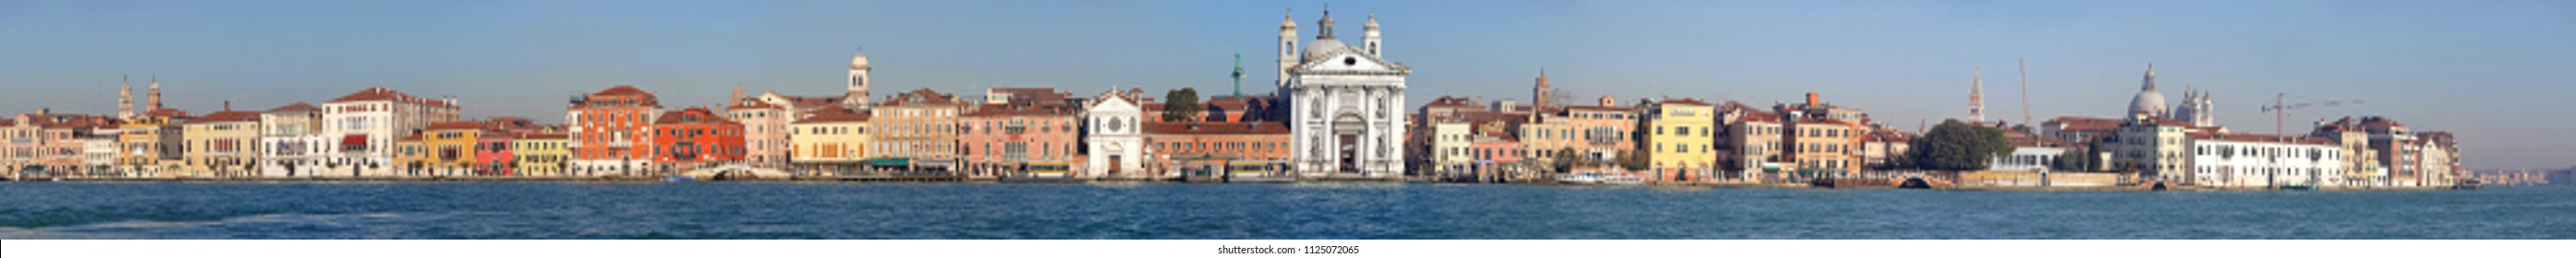 VENICE, ITALY - DECEMBER 19, 2012: Long Waterfront Cityscape Giudecca Canal Houses in Venice, Italy.